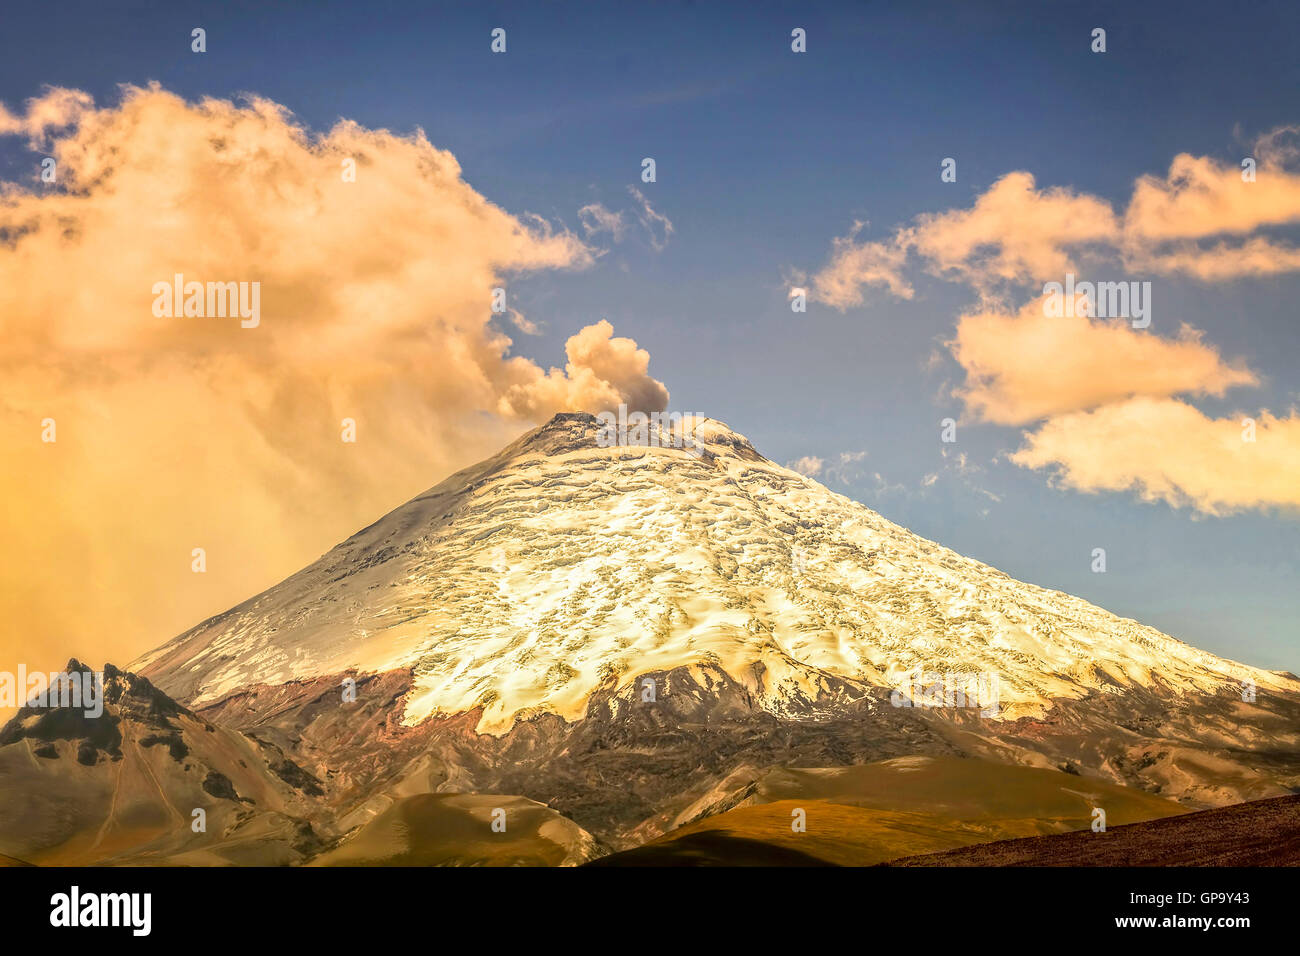 Eruption Of Ash Clouds From Cotopaxi Volcano, Ecuador, South America - Stock Image